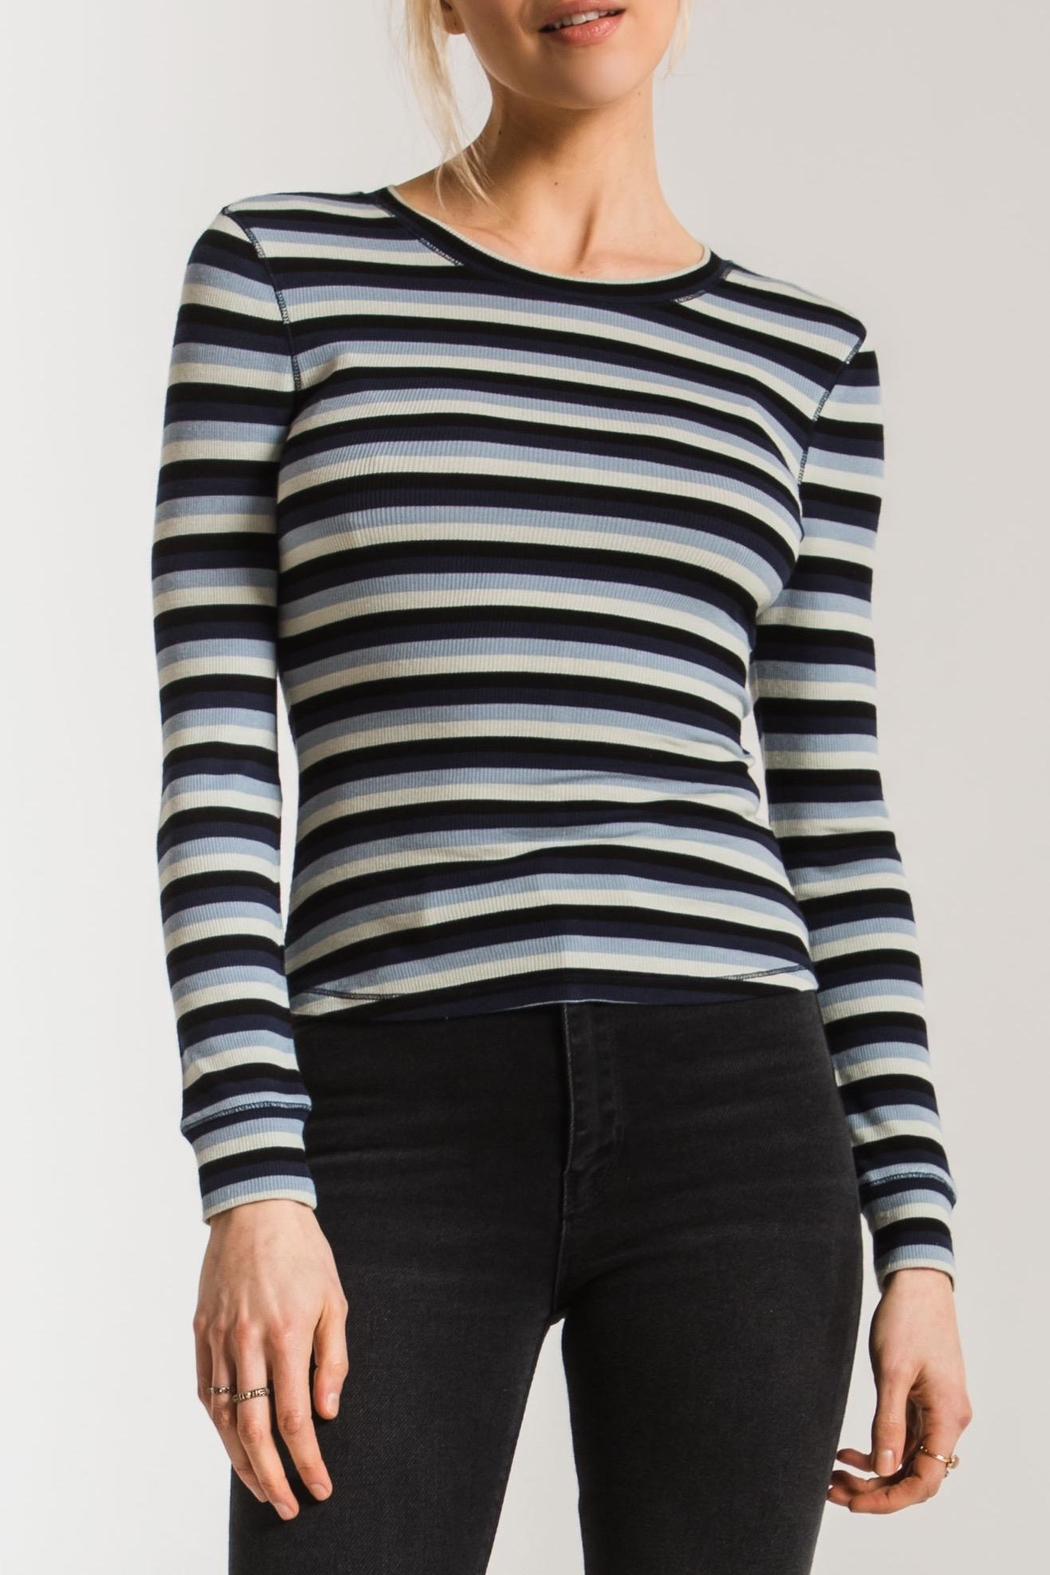 z supply Pamina Striped Tee - Front Cropped Image